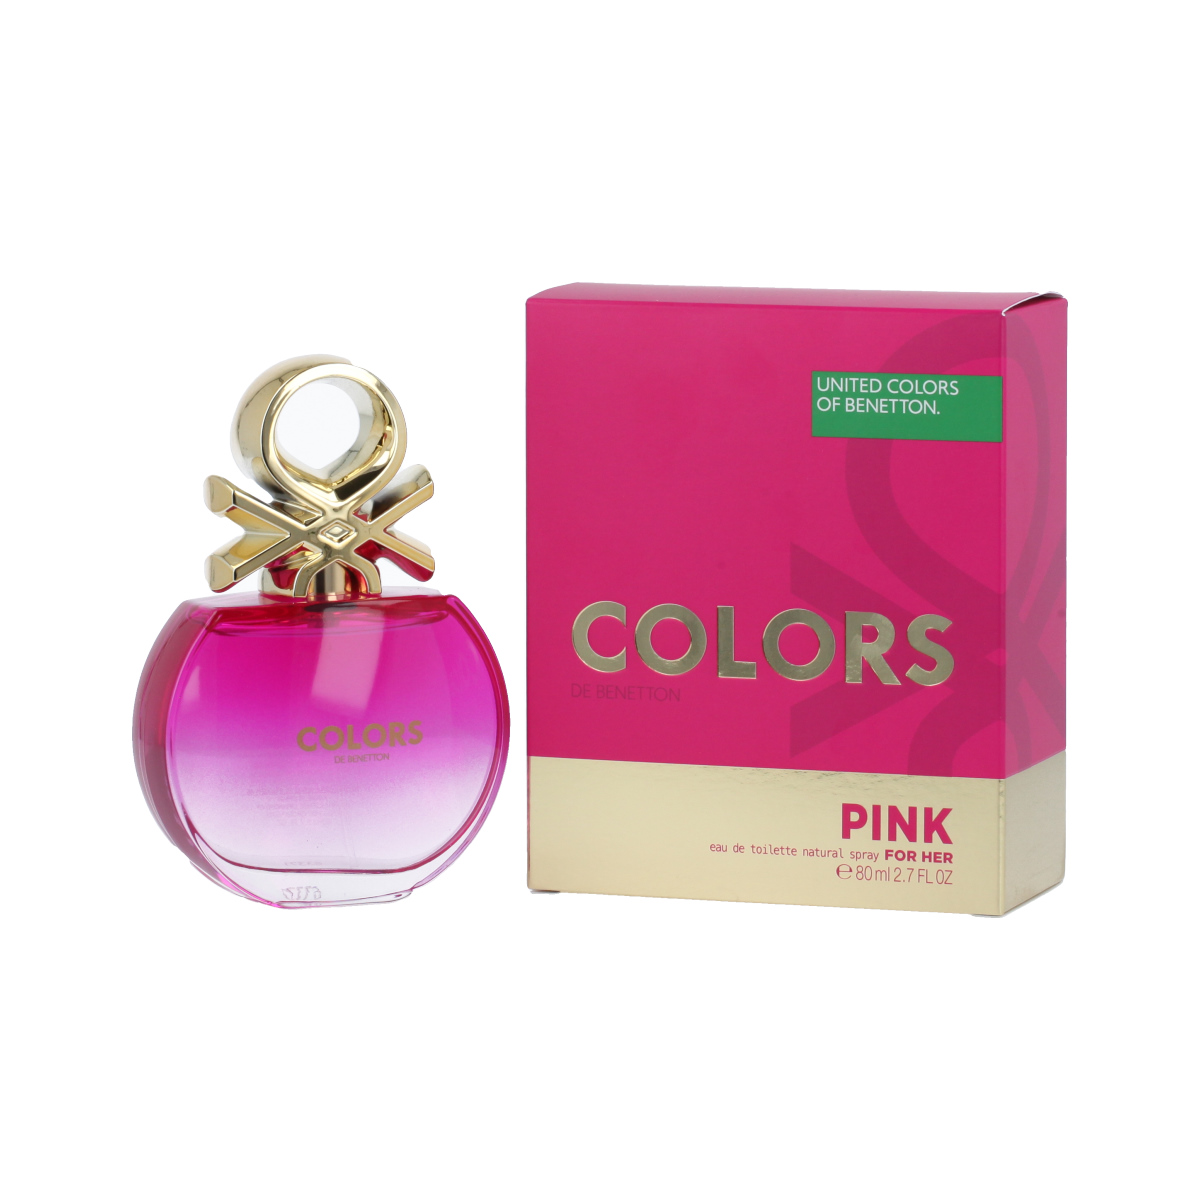 Benetton Colors de Benetton Pink Eau De Toilette 80 ml (woman) 96602